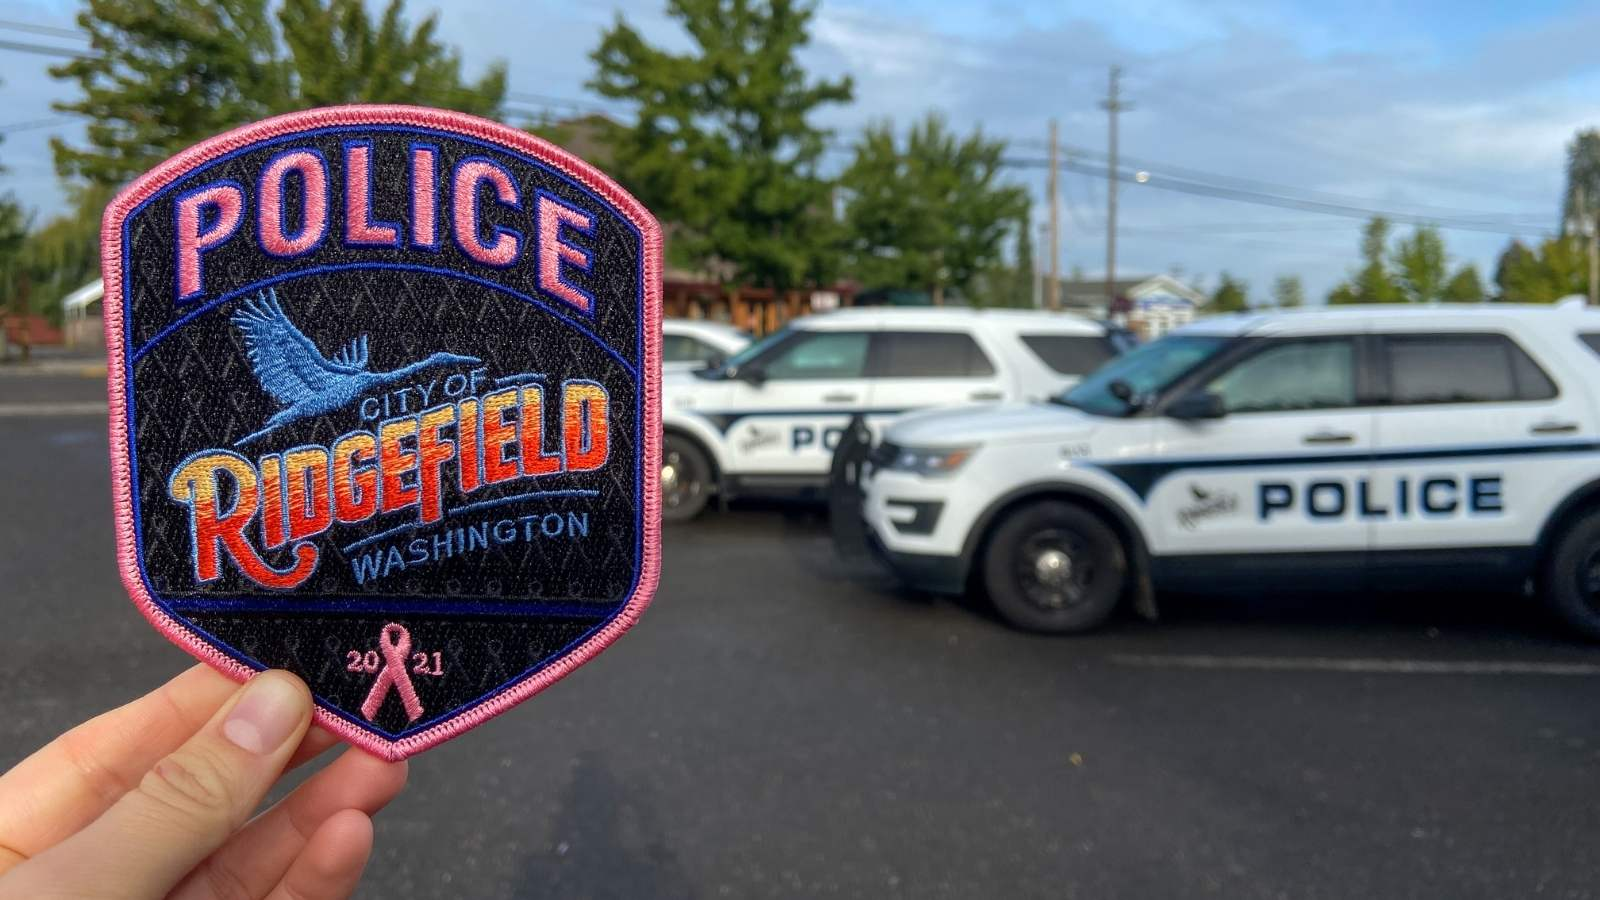 A hand holding a pink police department patch in front of a police car.